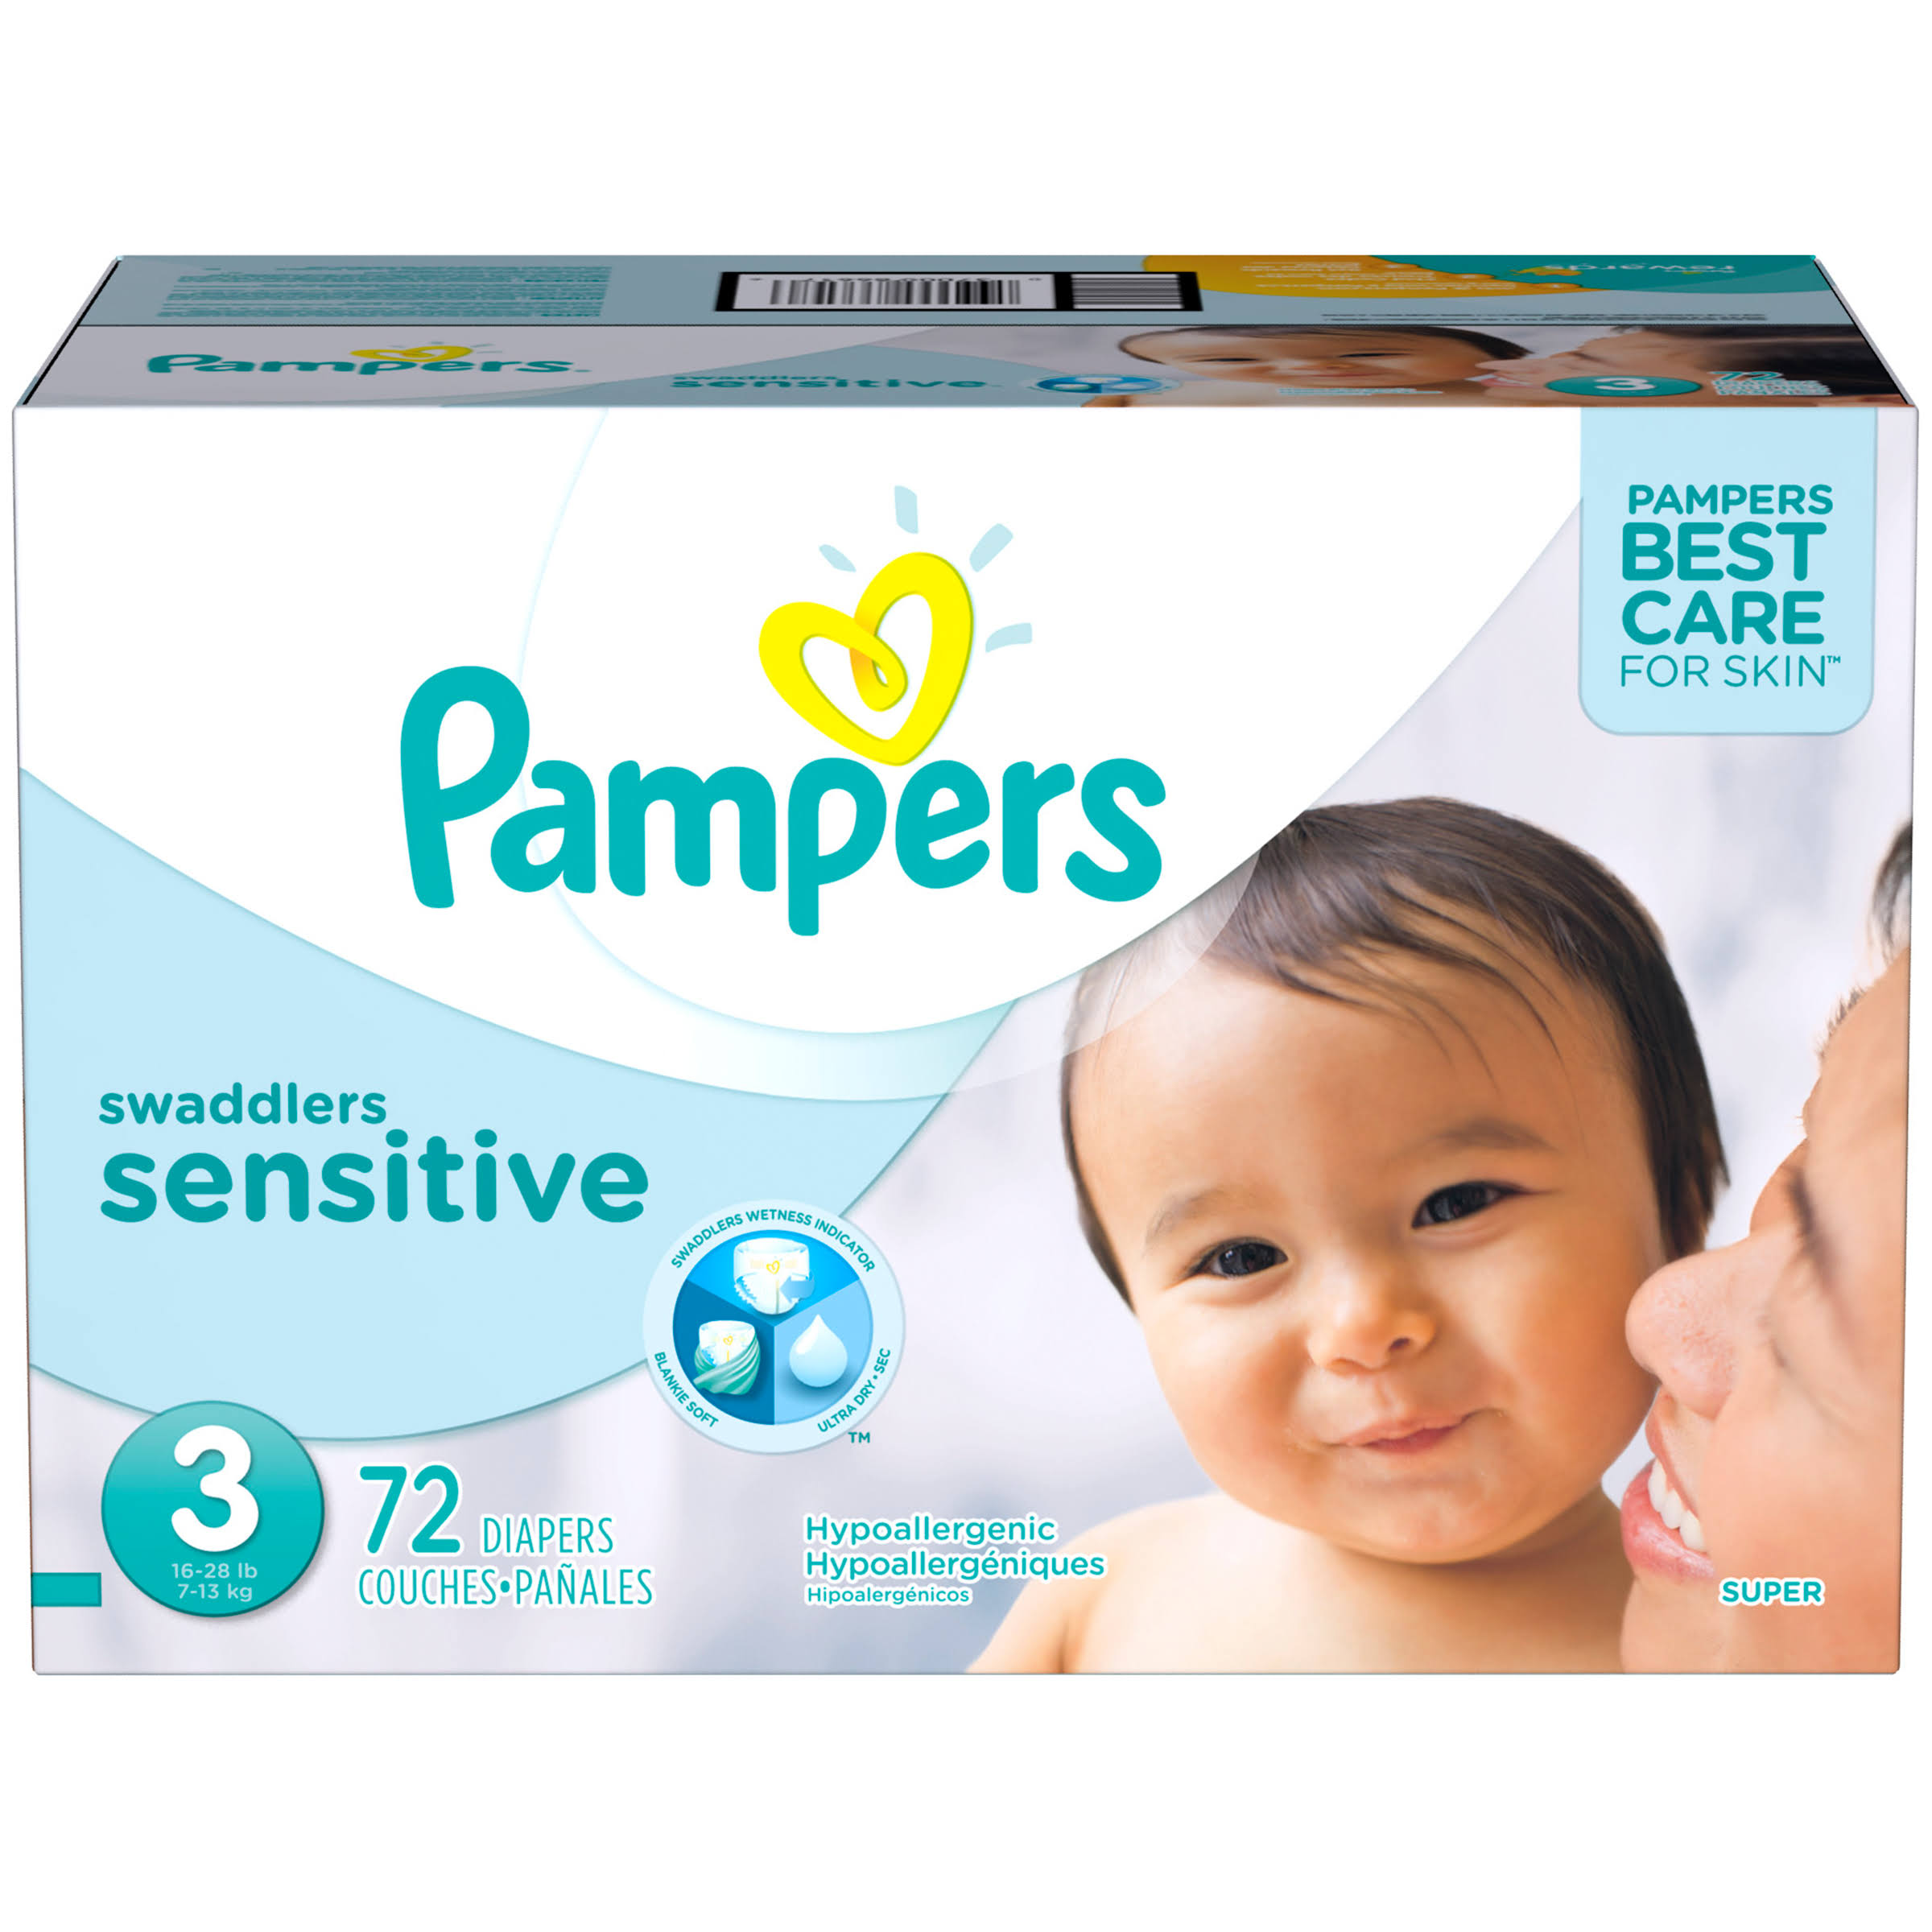 Pampers Swaddlers Sensitive Super Diapers - 3 16-28 lbs, 72pk